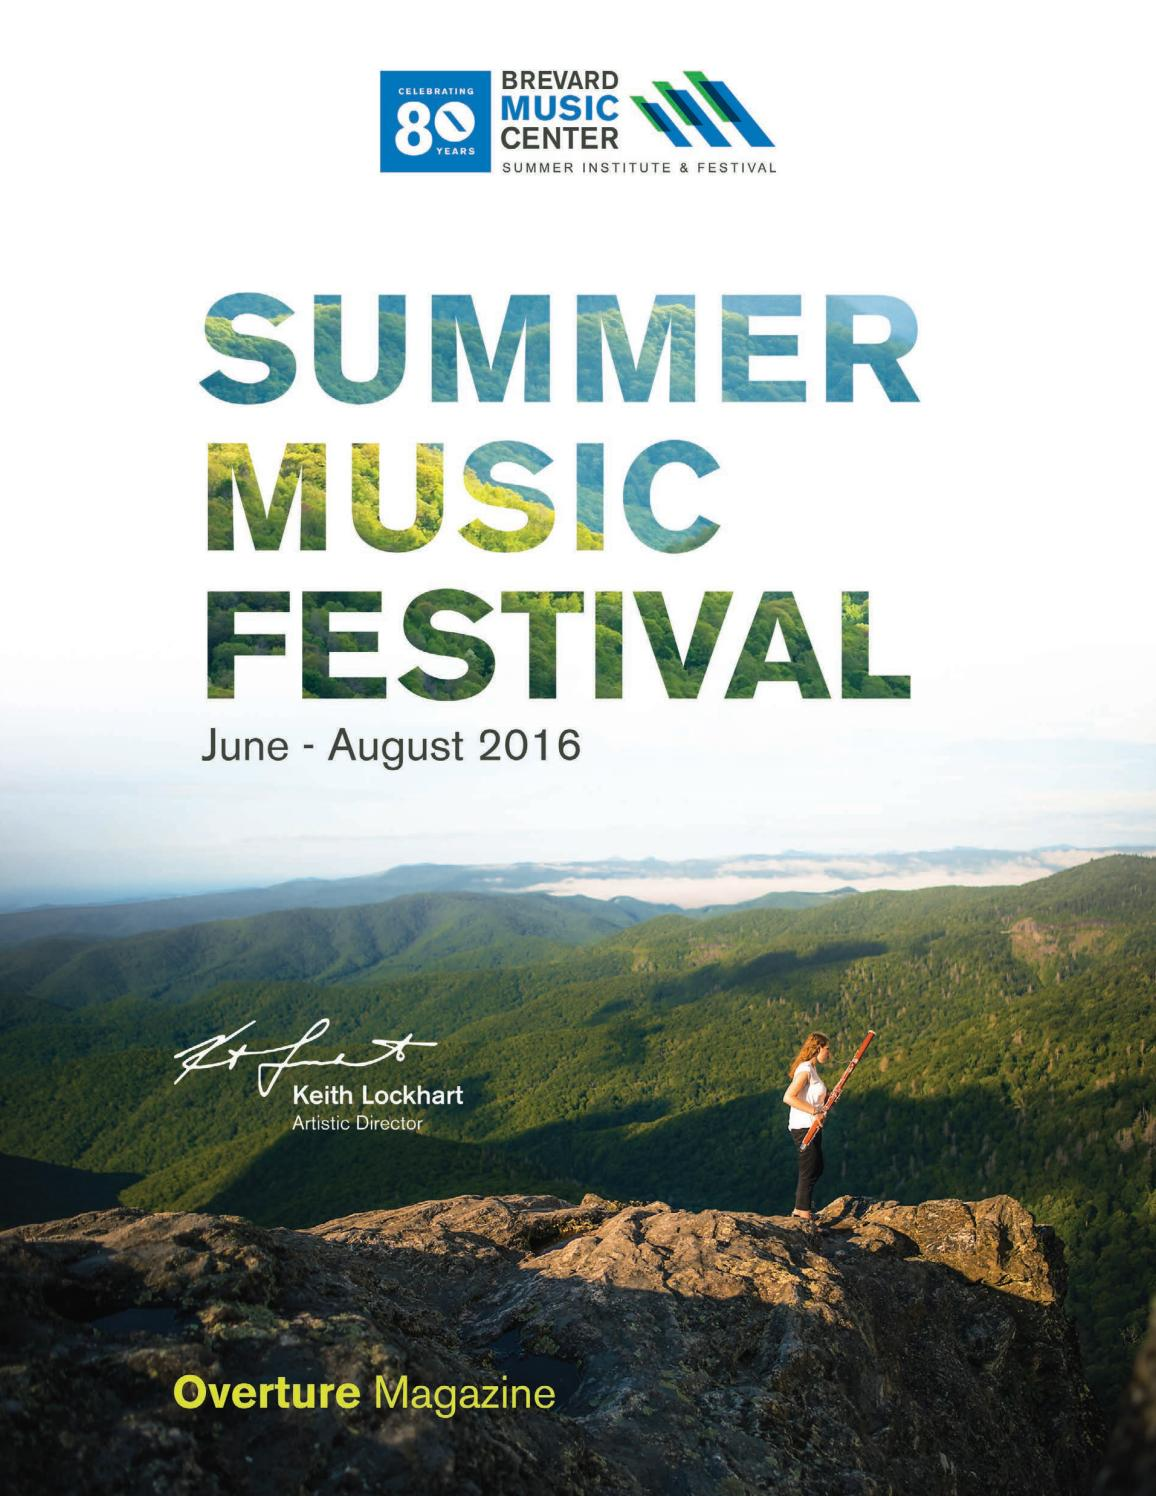 76ddbcd6c8 2016 Brevard Music Center Overture Magazine by Brevard Music Center - issuu